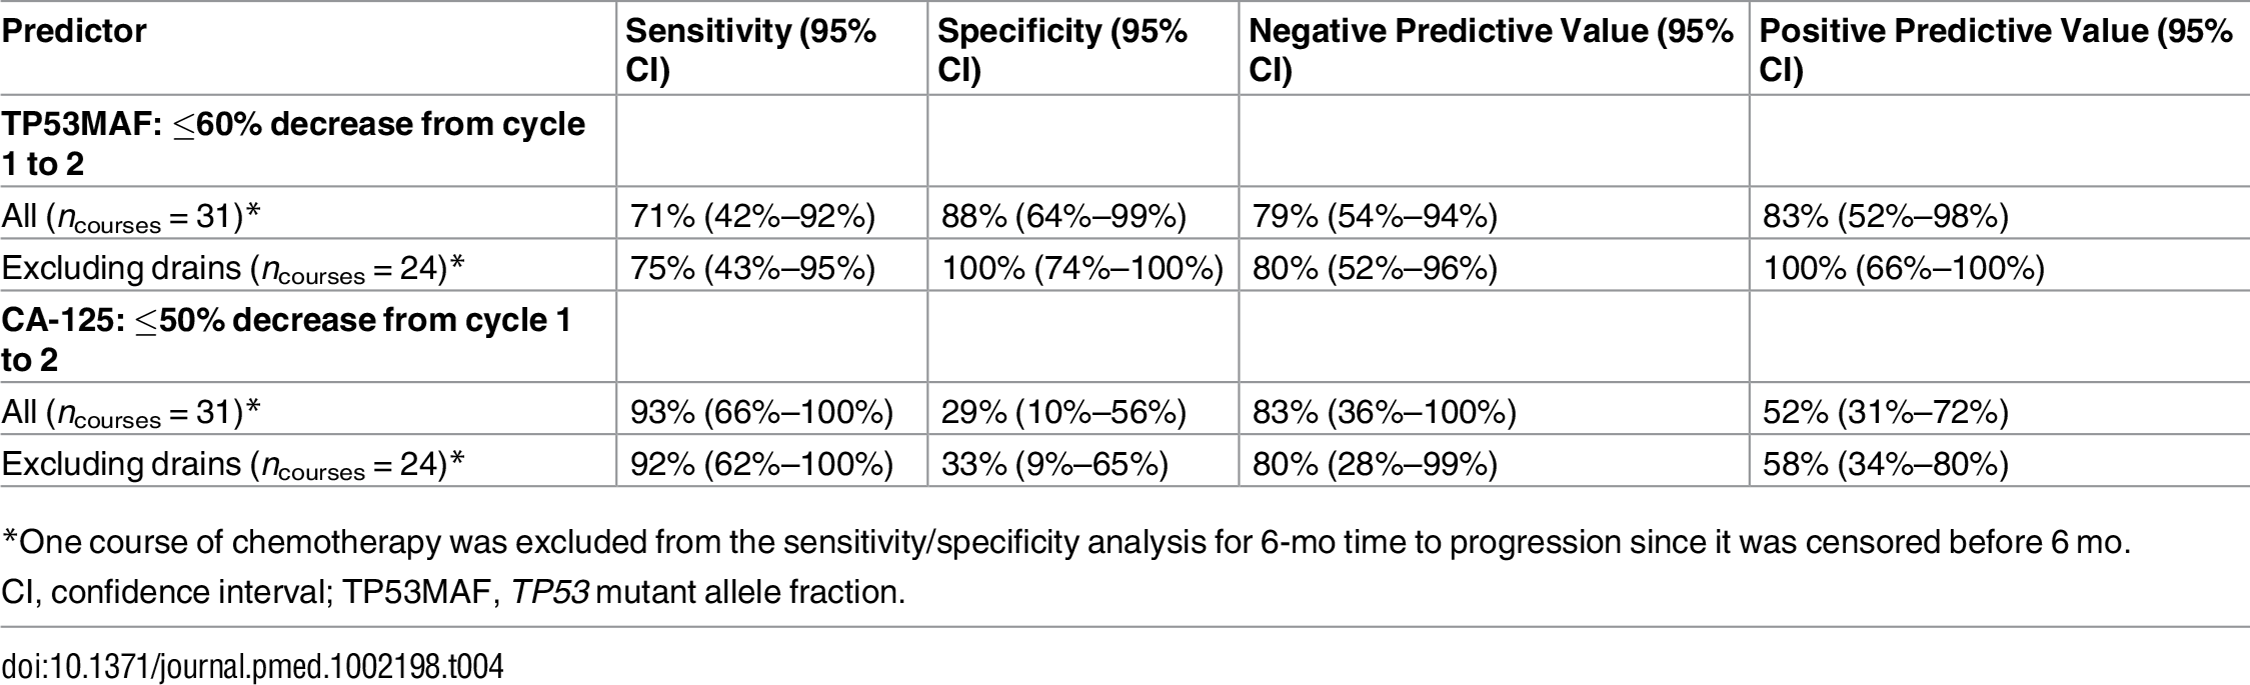 Sensitivity and specificity of a decrease in <i>TP53</i> mutant allele fraction and CA-125 for predicting 6-mo time to progression following one cycle of chemotherapy.